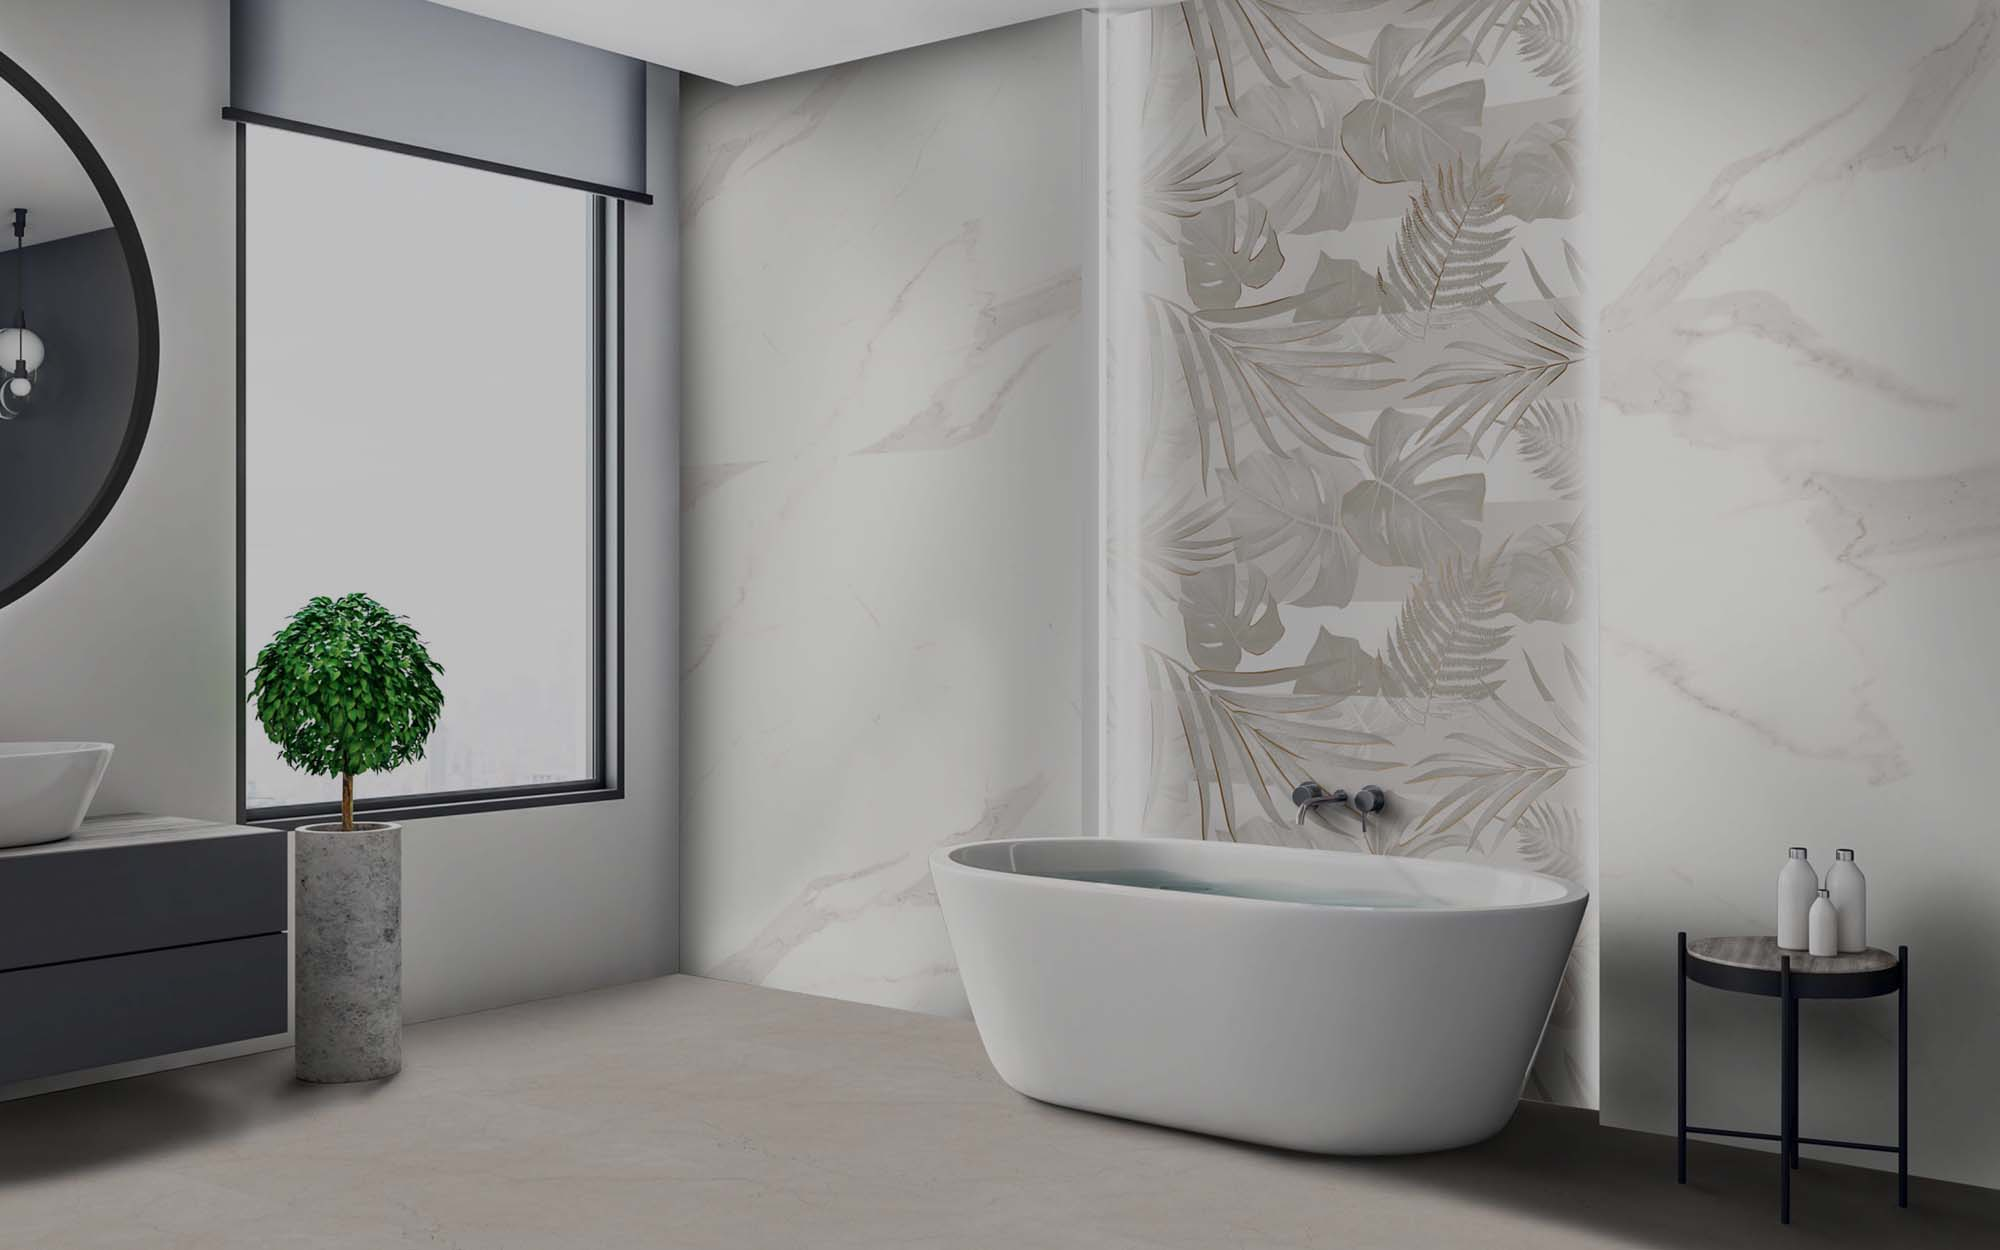 Choosing the right tiles for your bathroom design